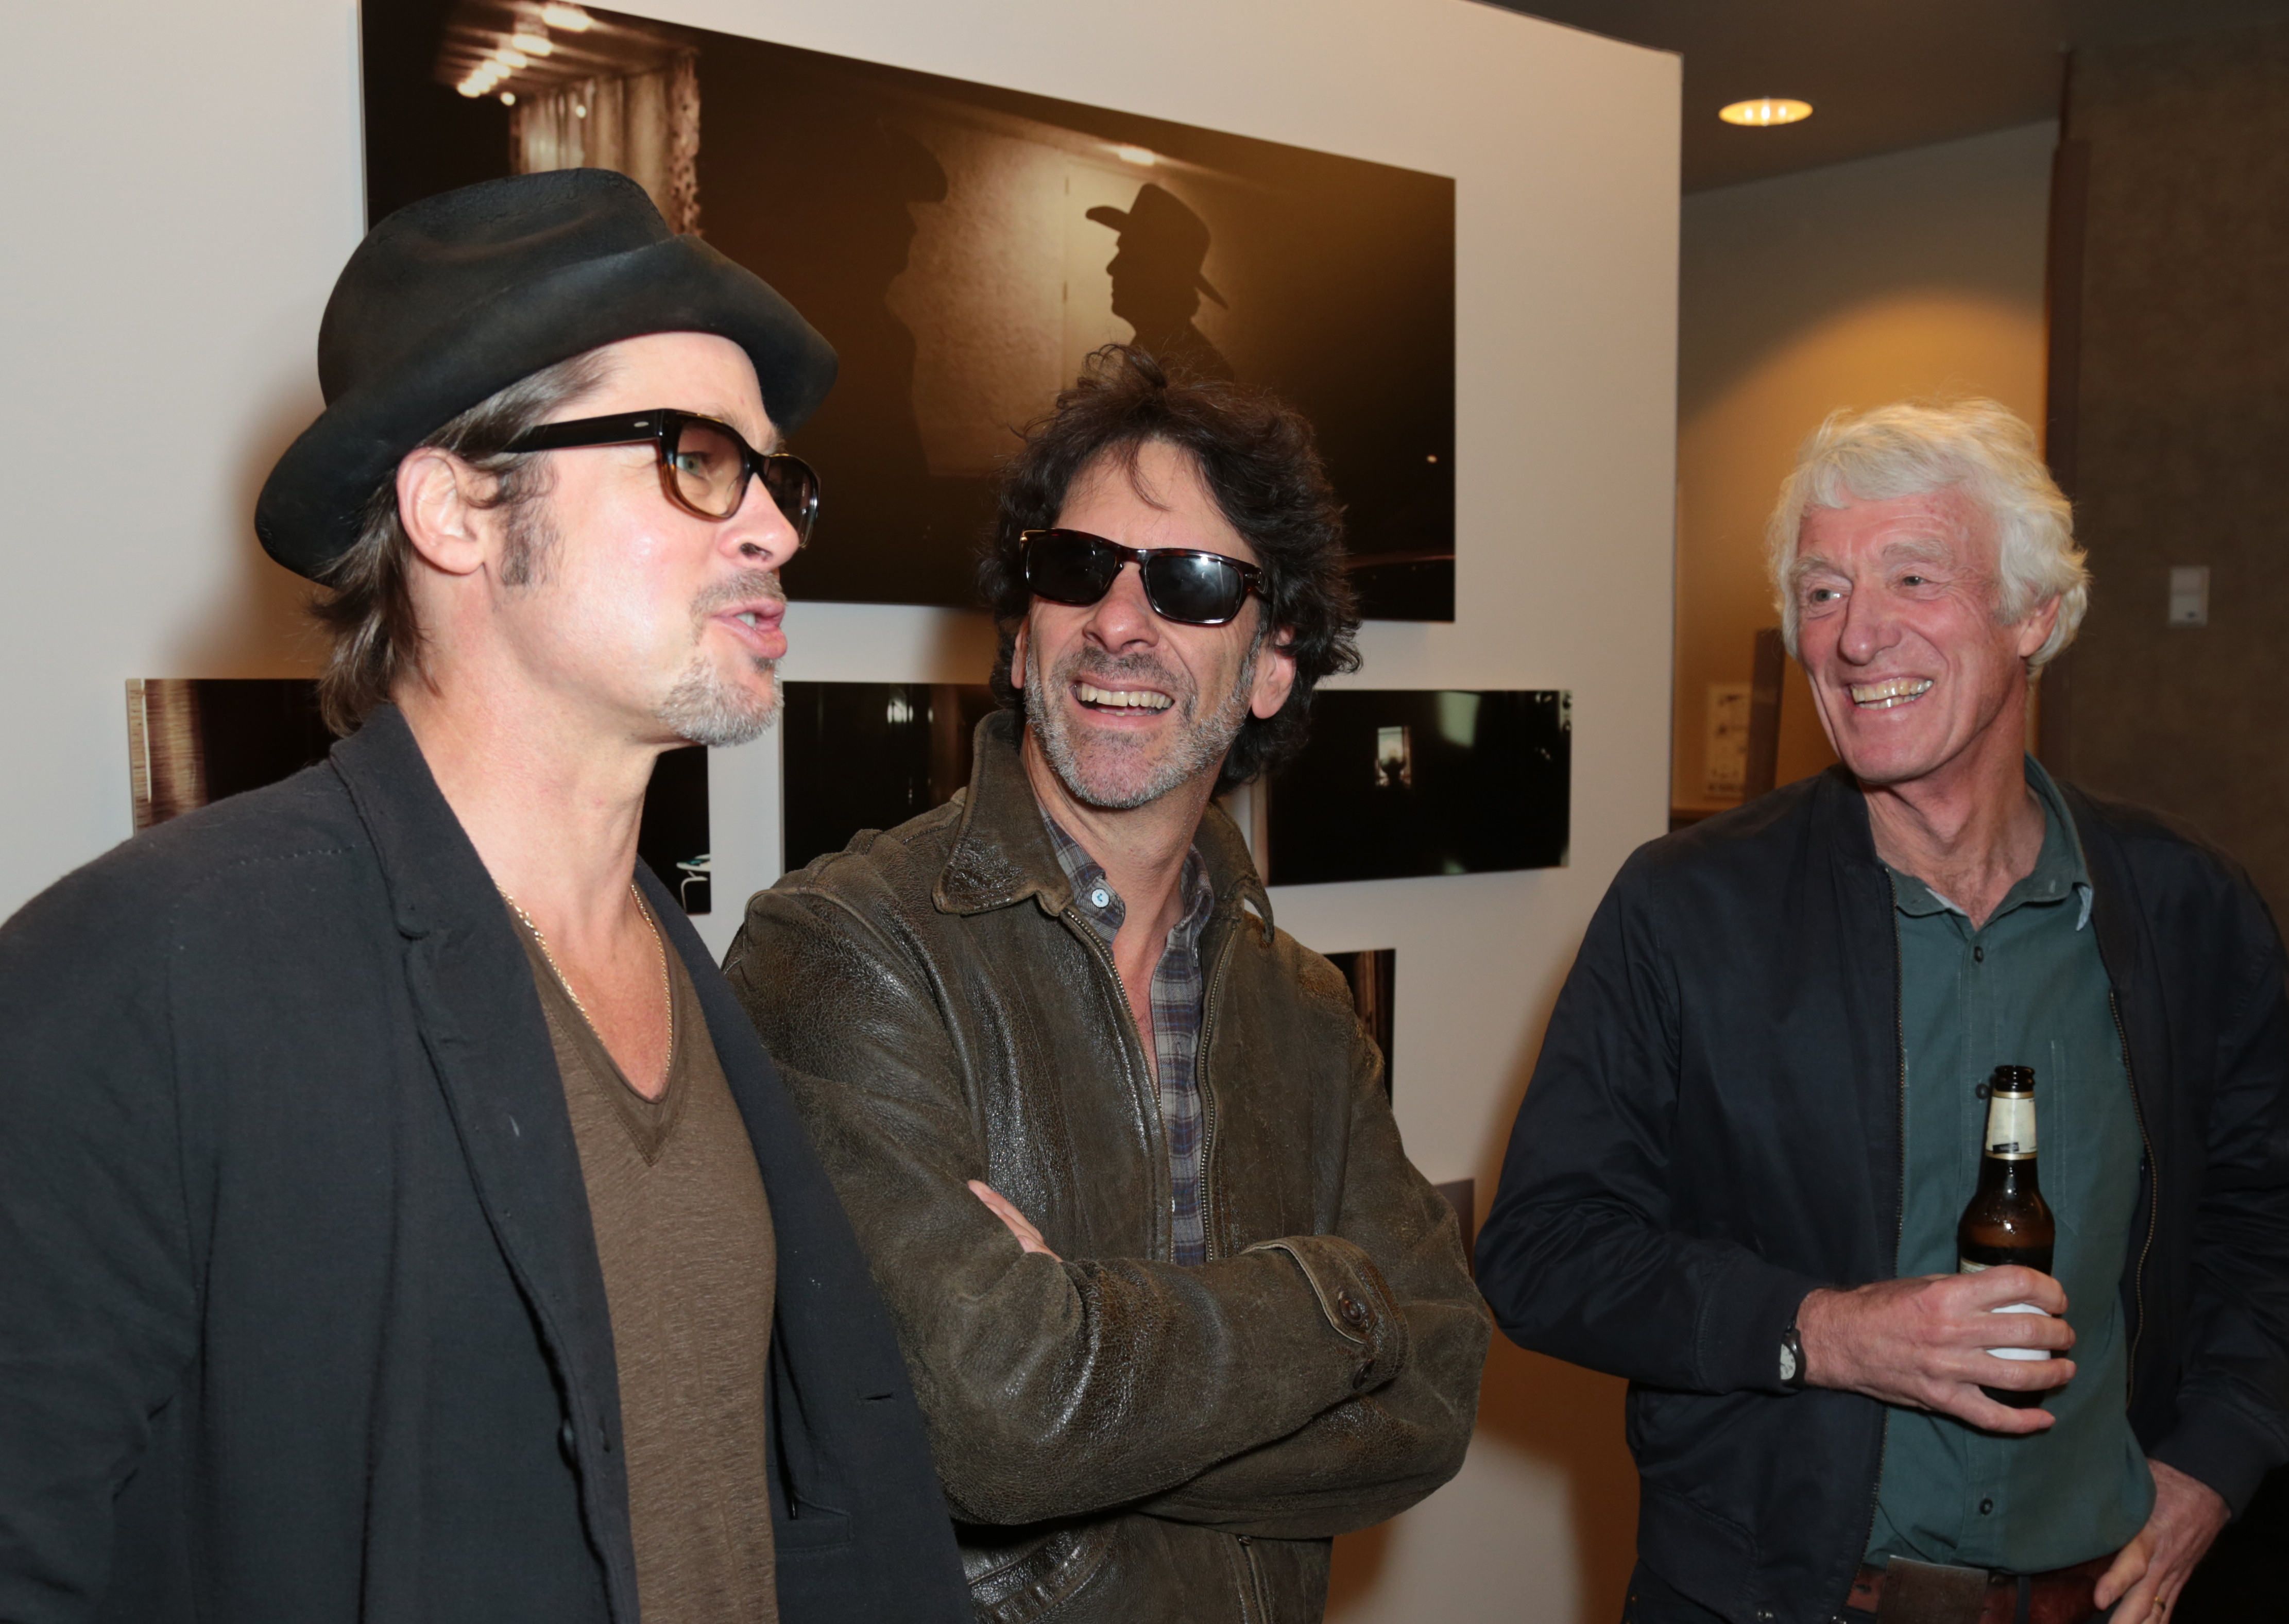 From left: Brad Pitt, Joel Coen and Roger Deakins mingle at the opening reception for Roger Deakins: Persistent Vision.